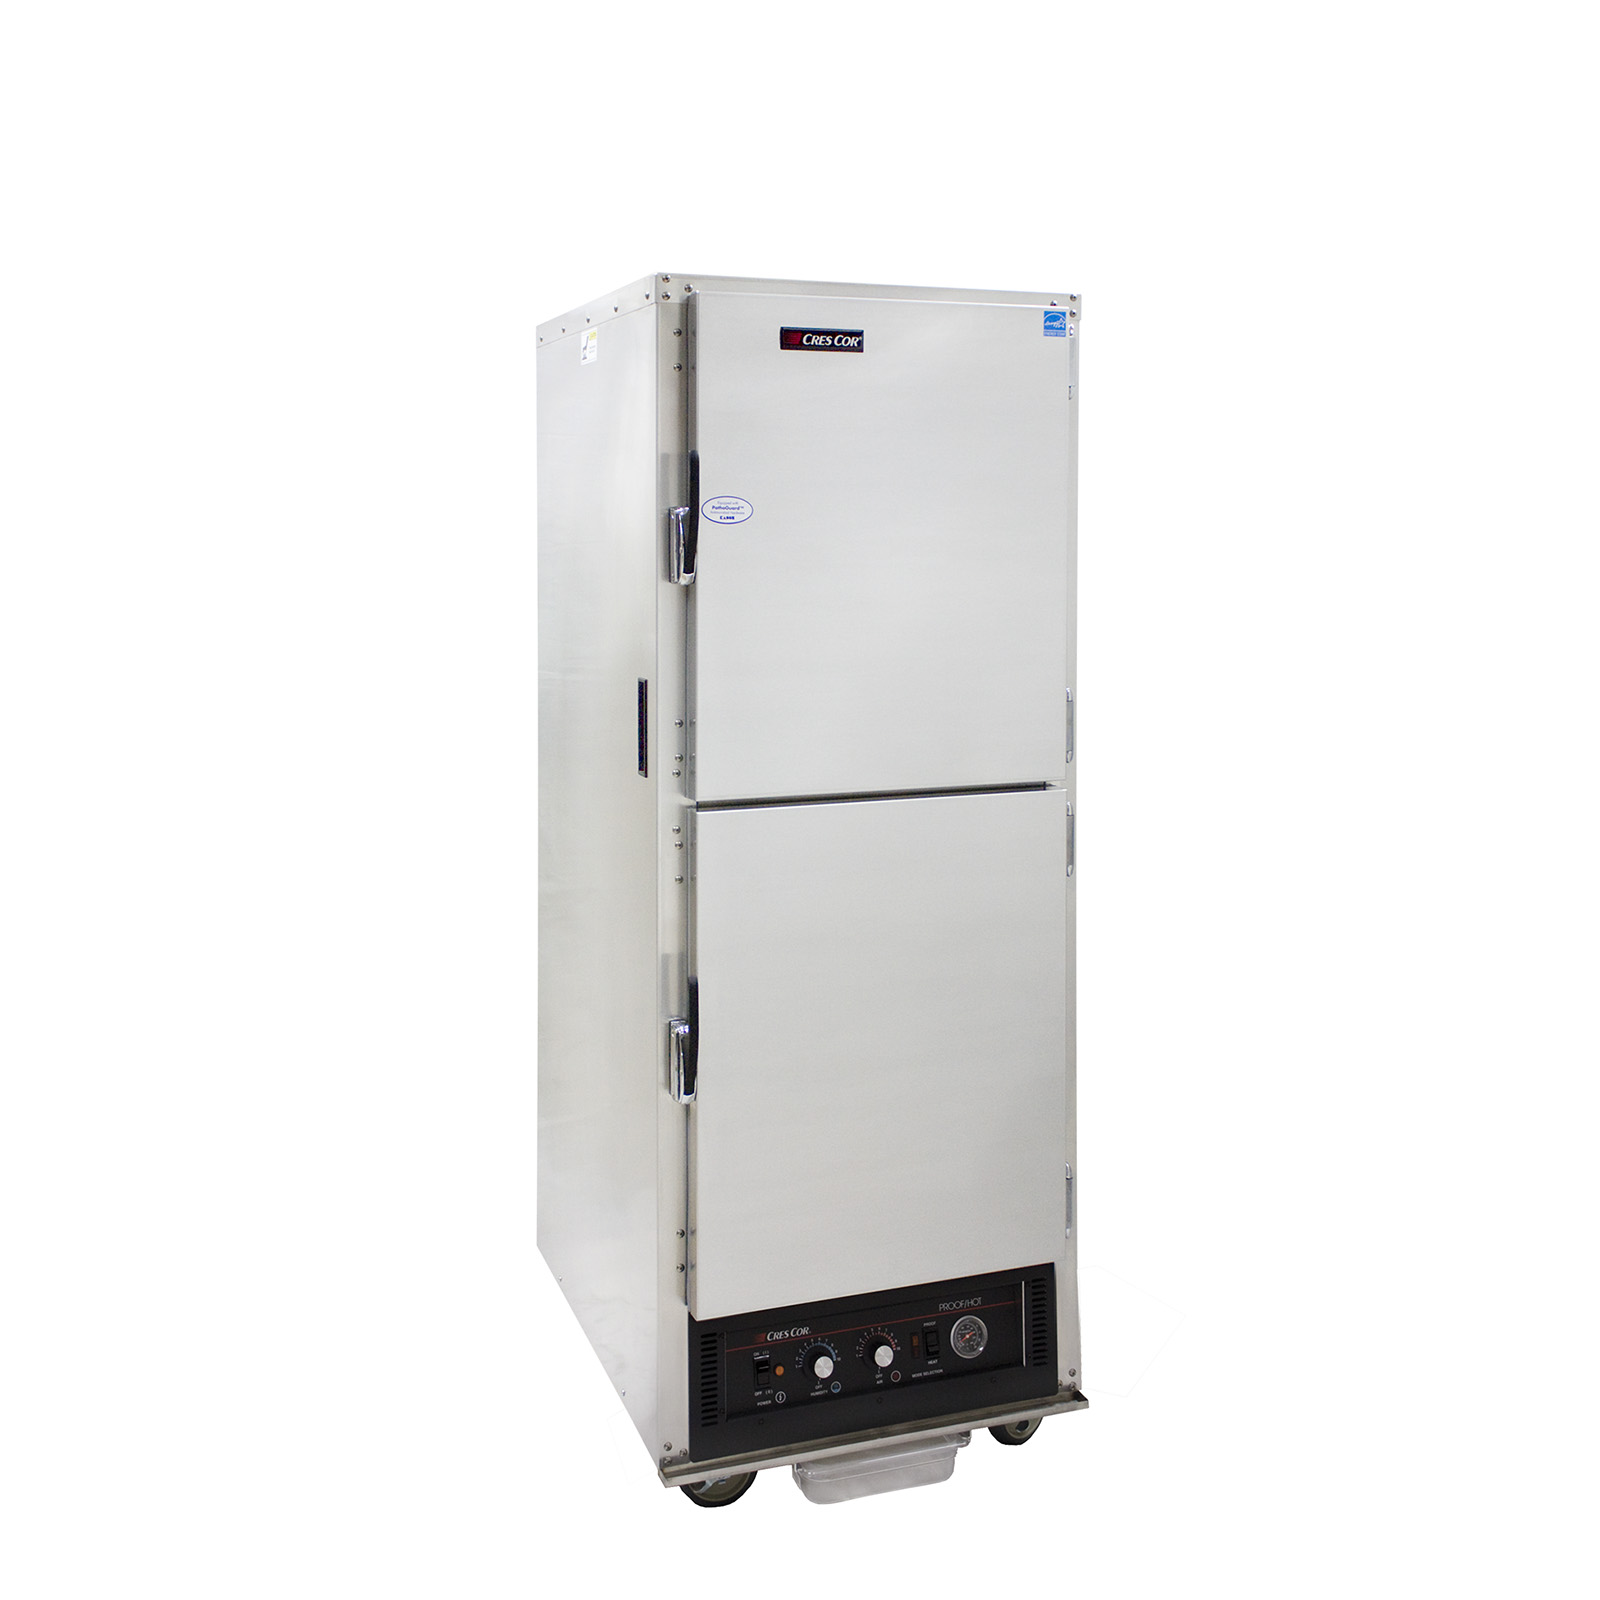 Cres Cor H-135-WUA-11 heated cabinet, mobile